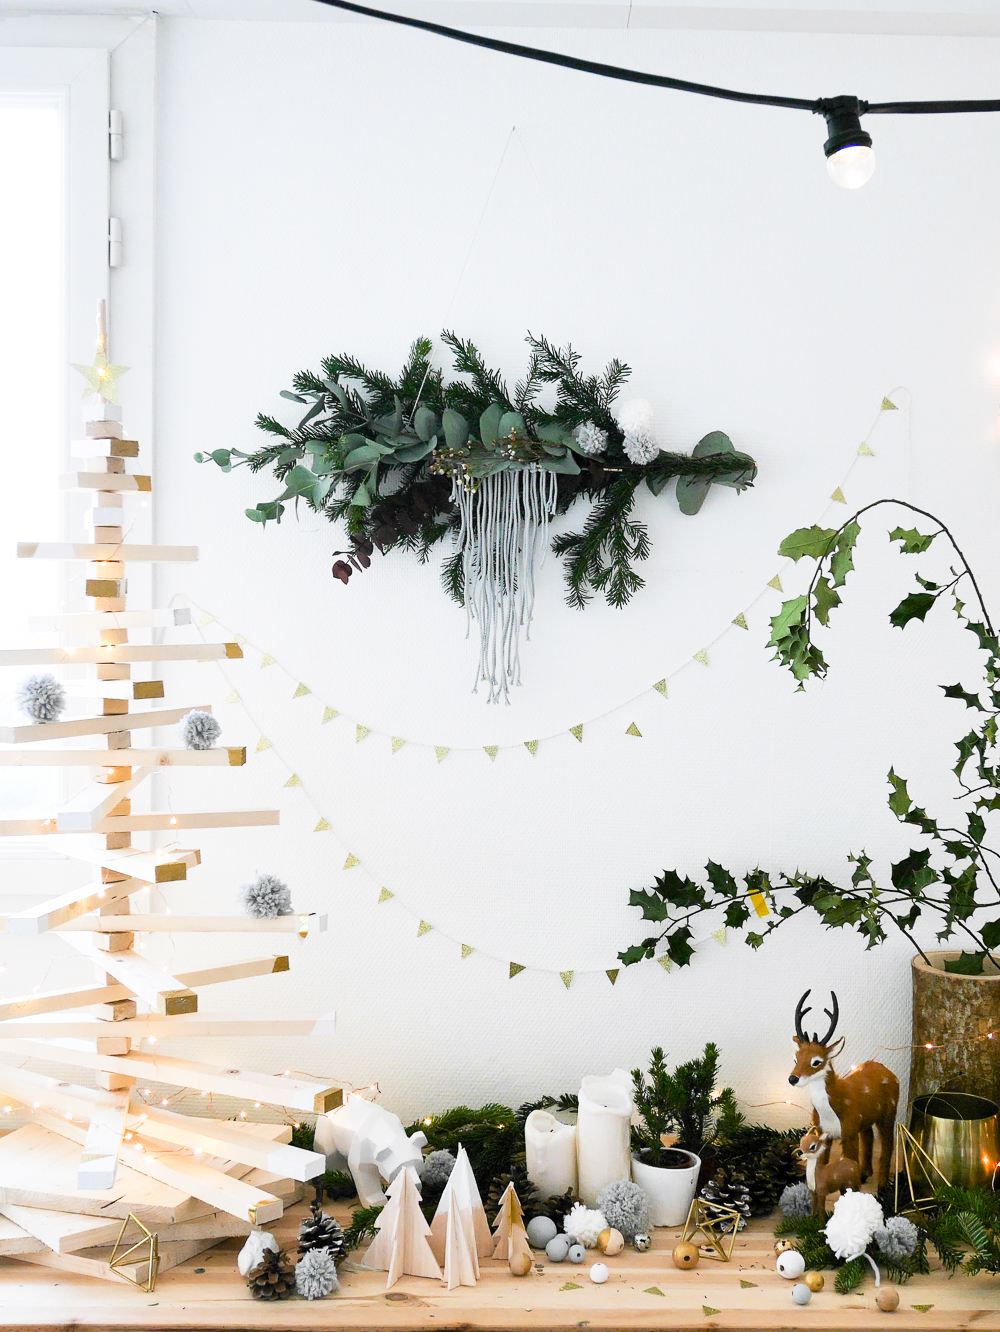 diy-deco-noel-lili-in-wonderland-149